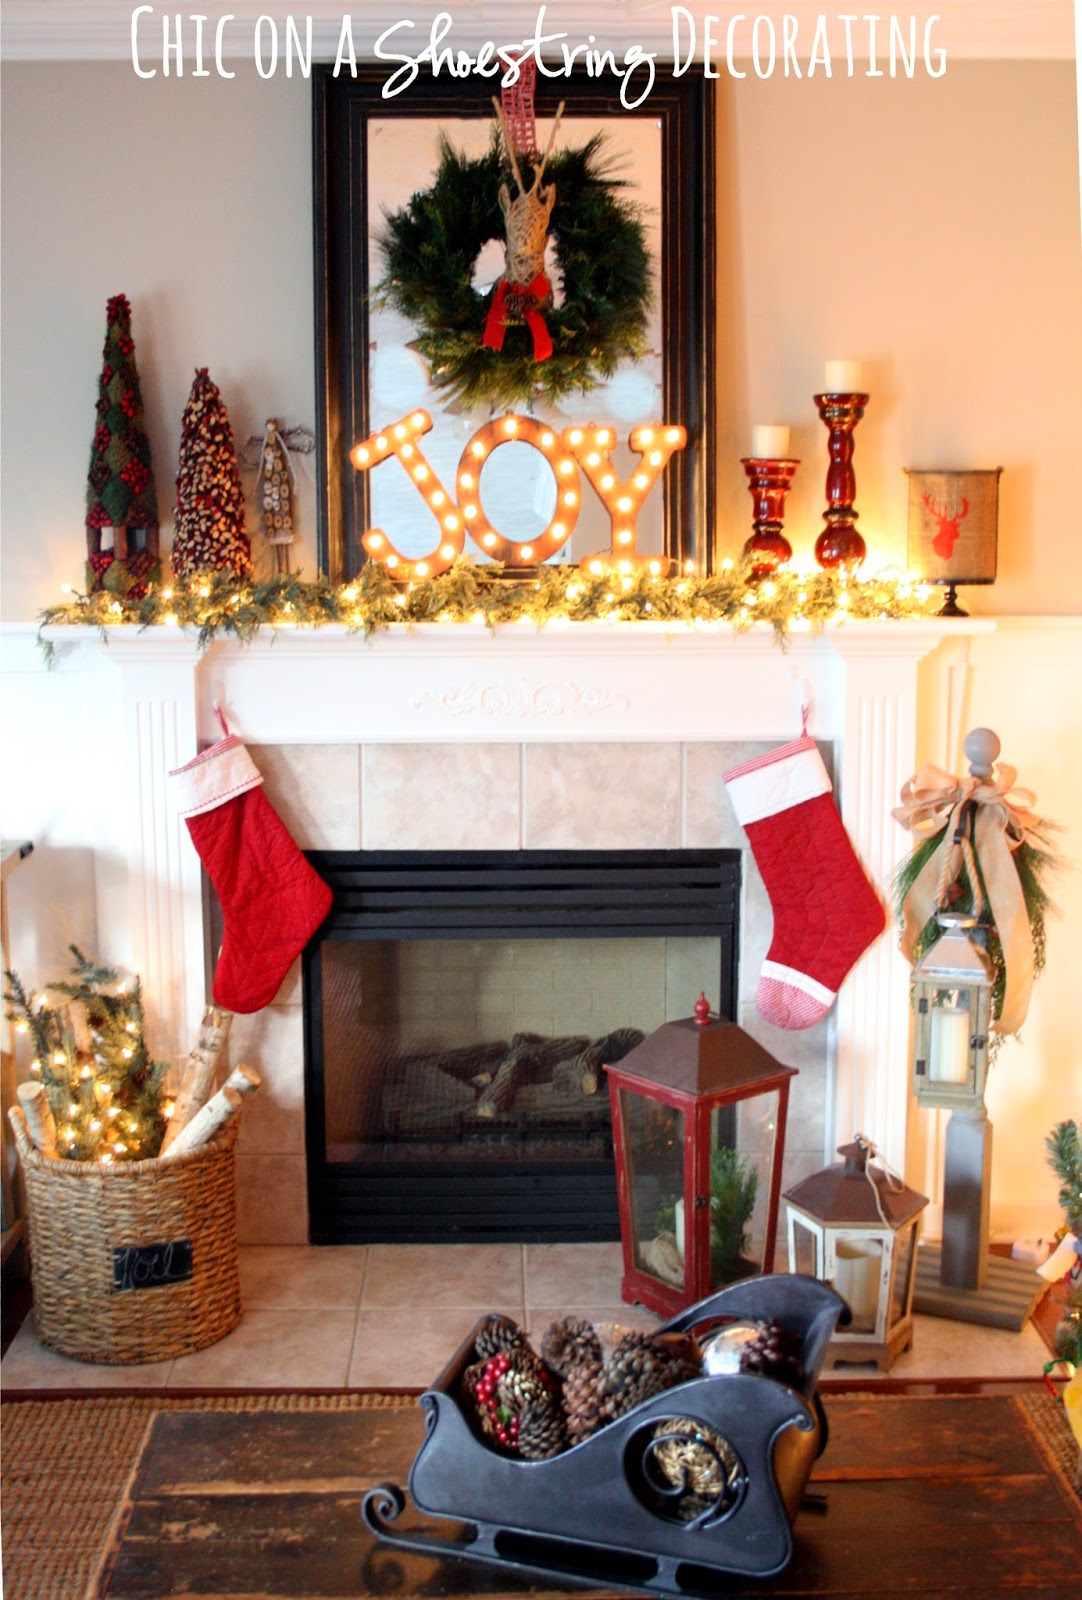 chic on a shoestring decorating christmas house tour